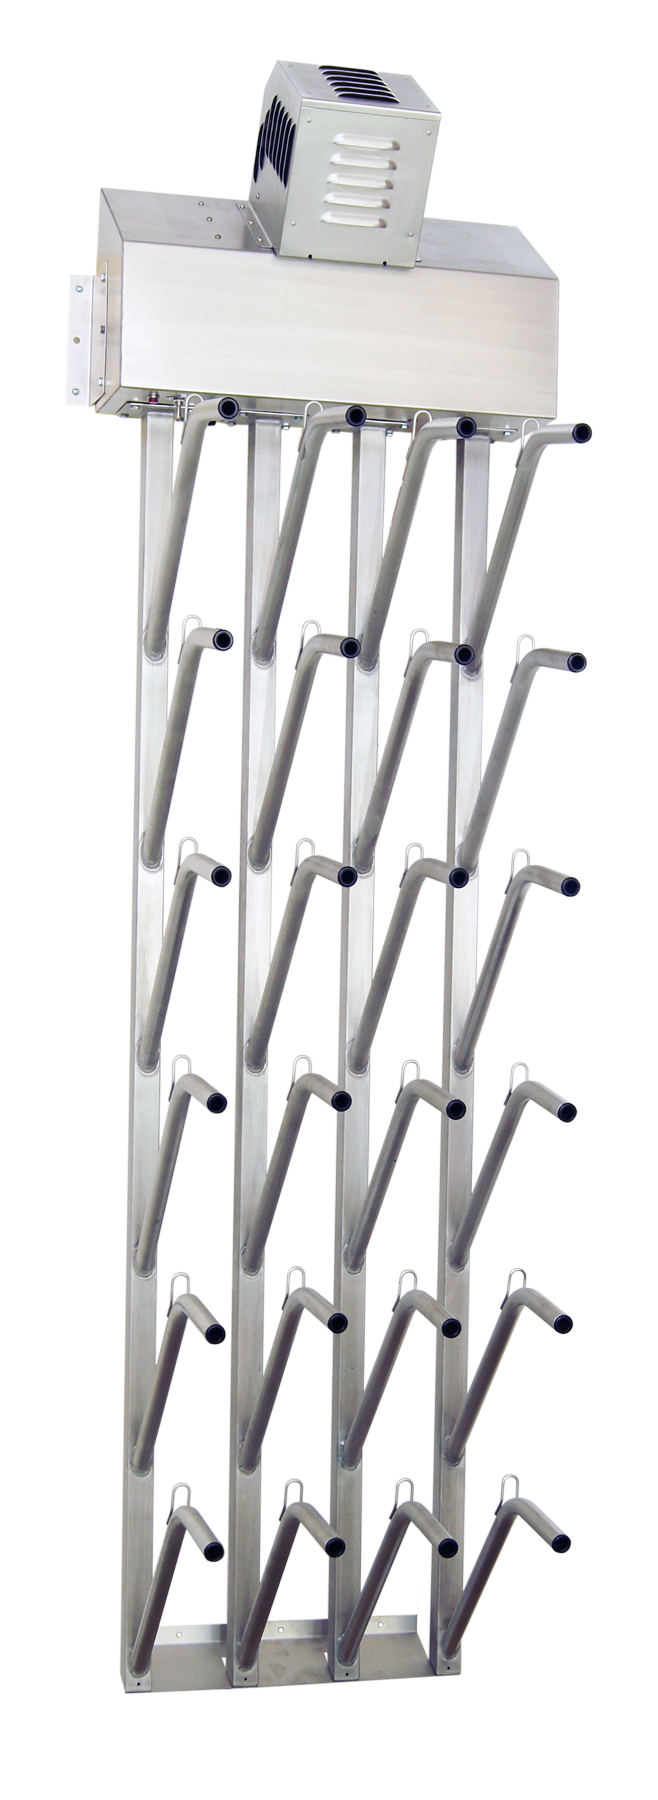 Food Processing Boot Dryer, Wall Mount, Stainless, 12 pair (24 boots) Model: W12FG